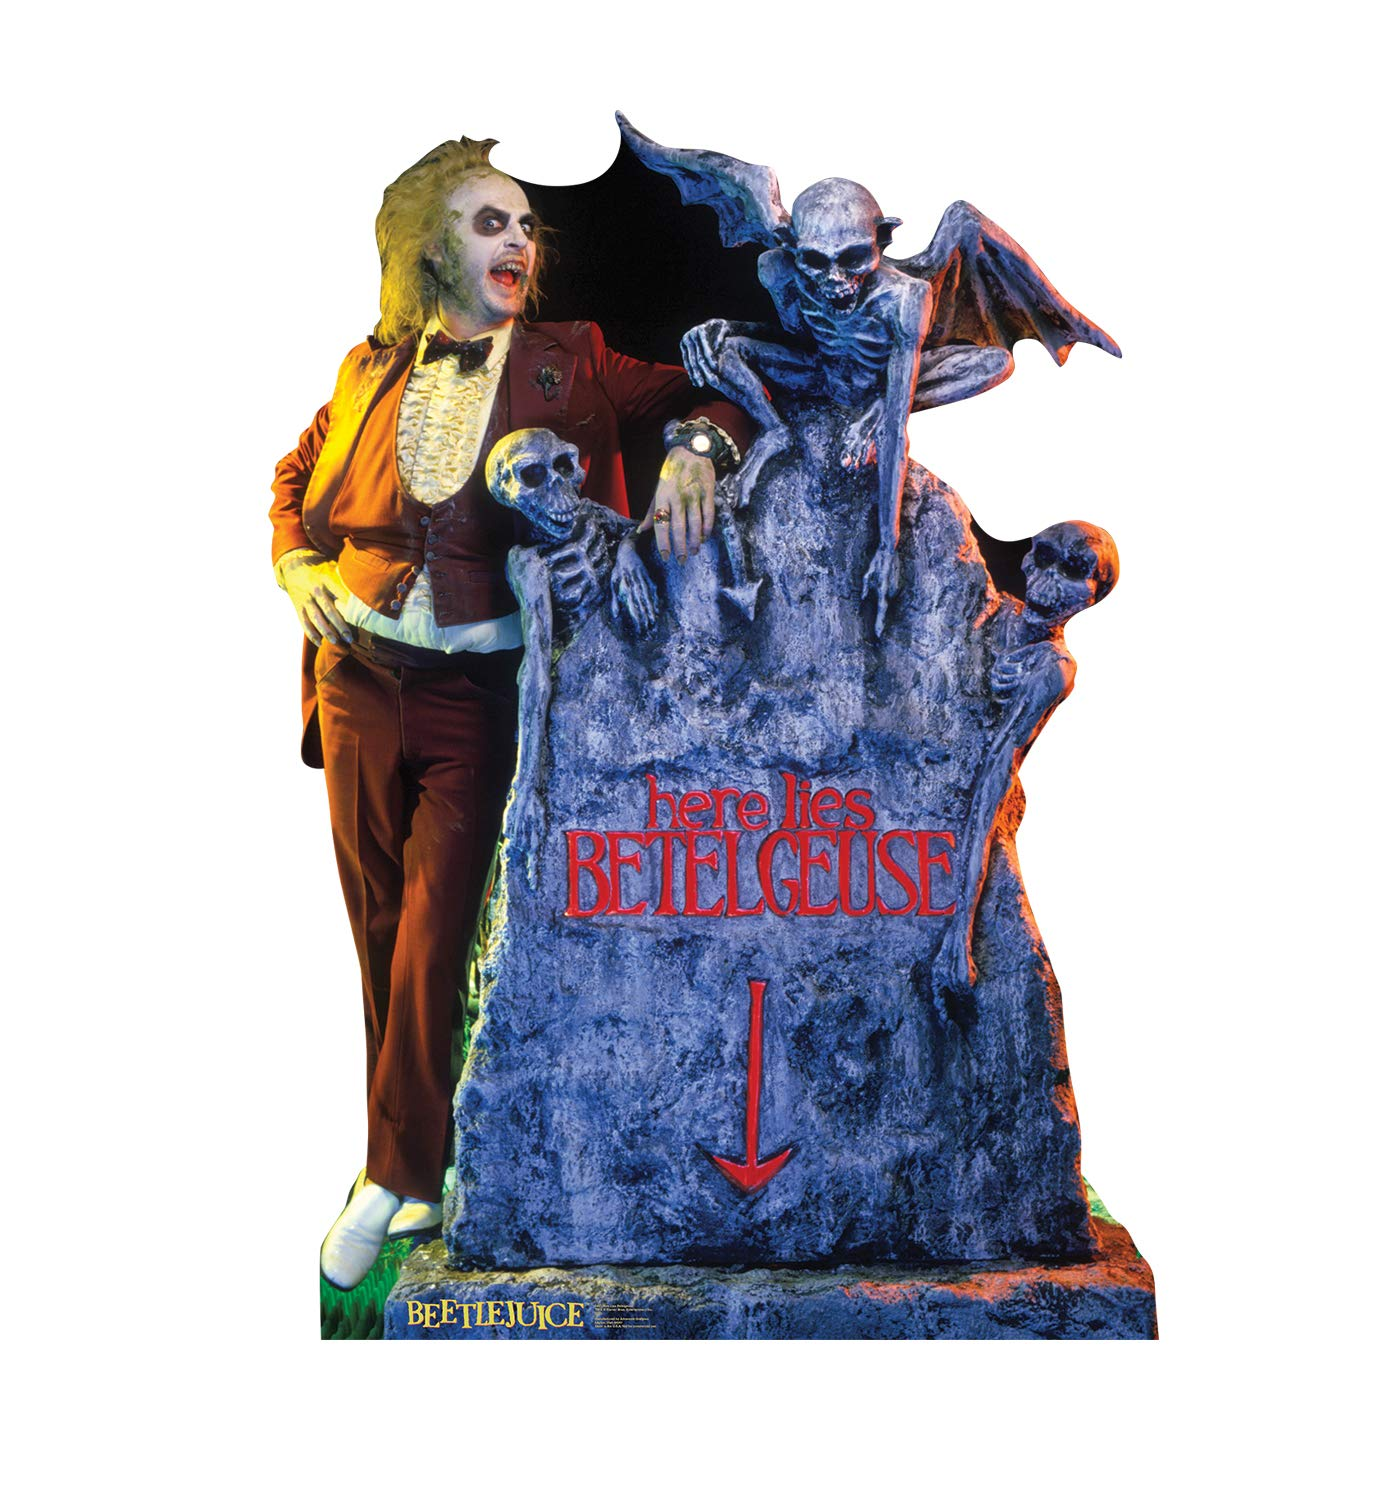 Advanced Graphics Beetlejuice - Here Lies Betelgeuse Life Size Cardboard Cutout Standup - Beetlejuice (1988 Film)